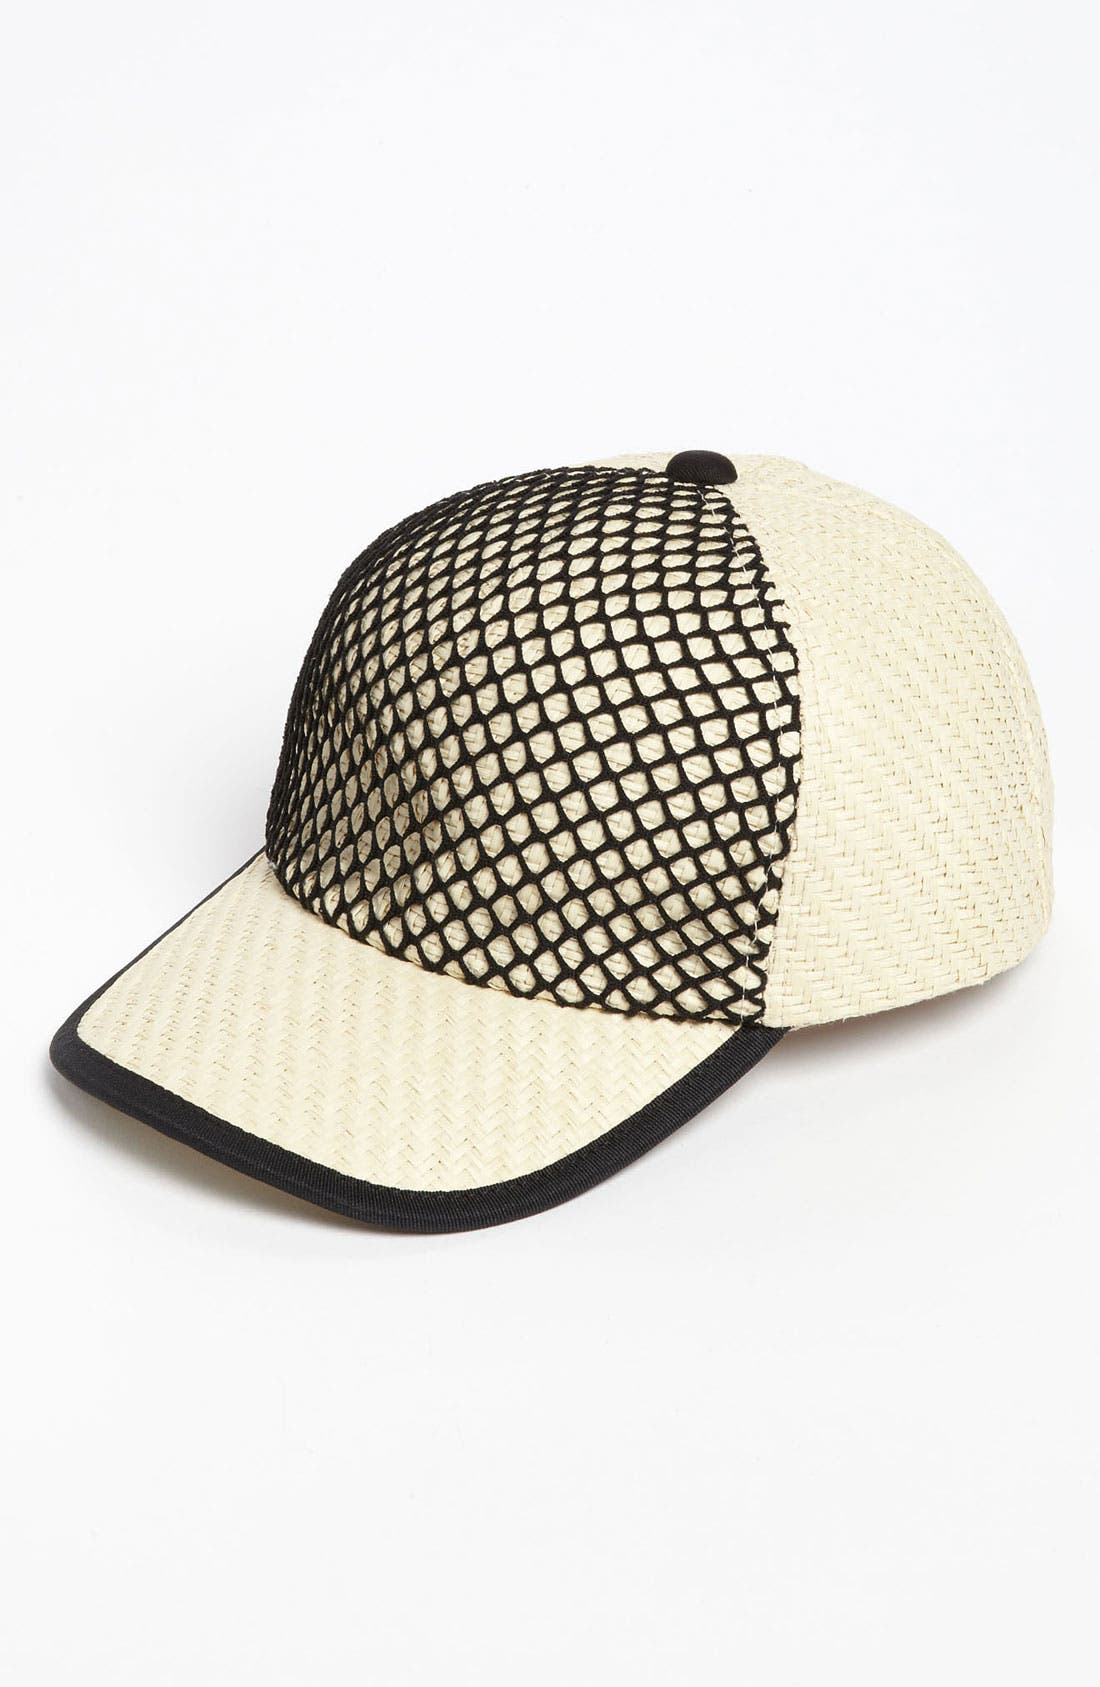 Main Image - Collection XIIX Netted Cap